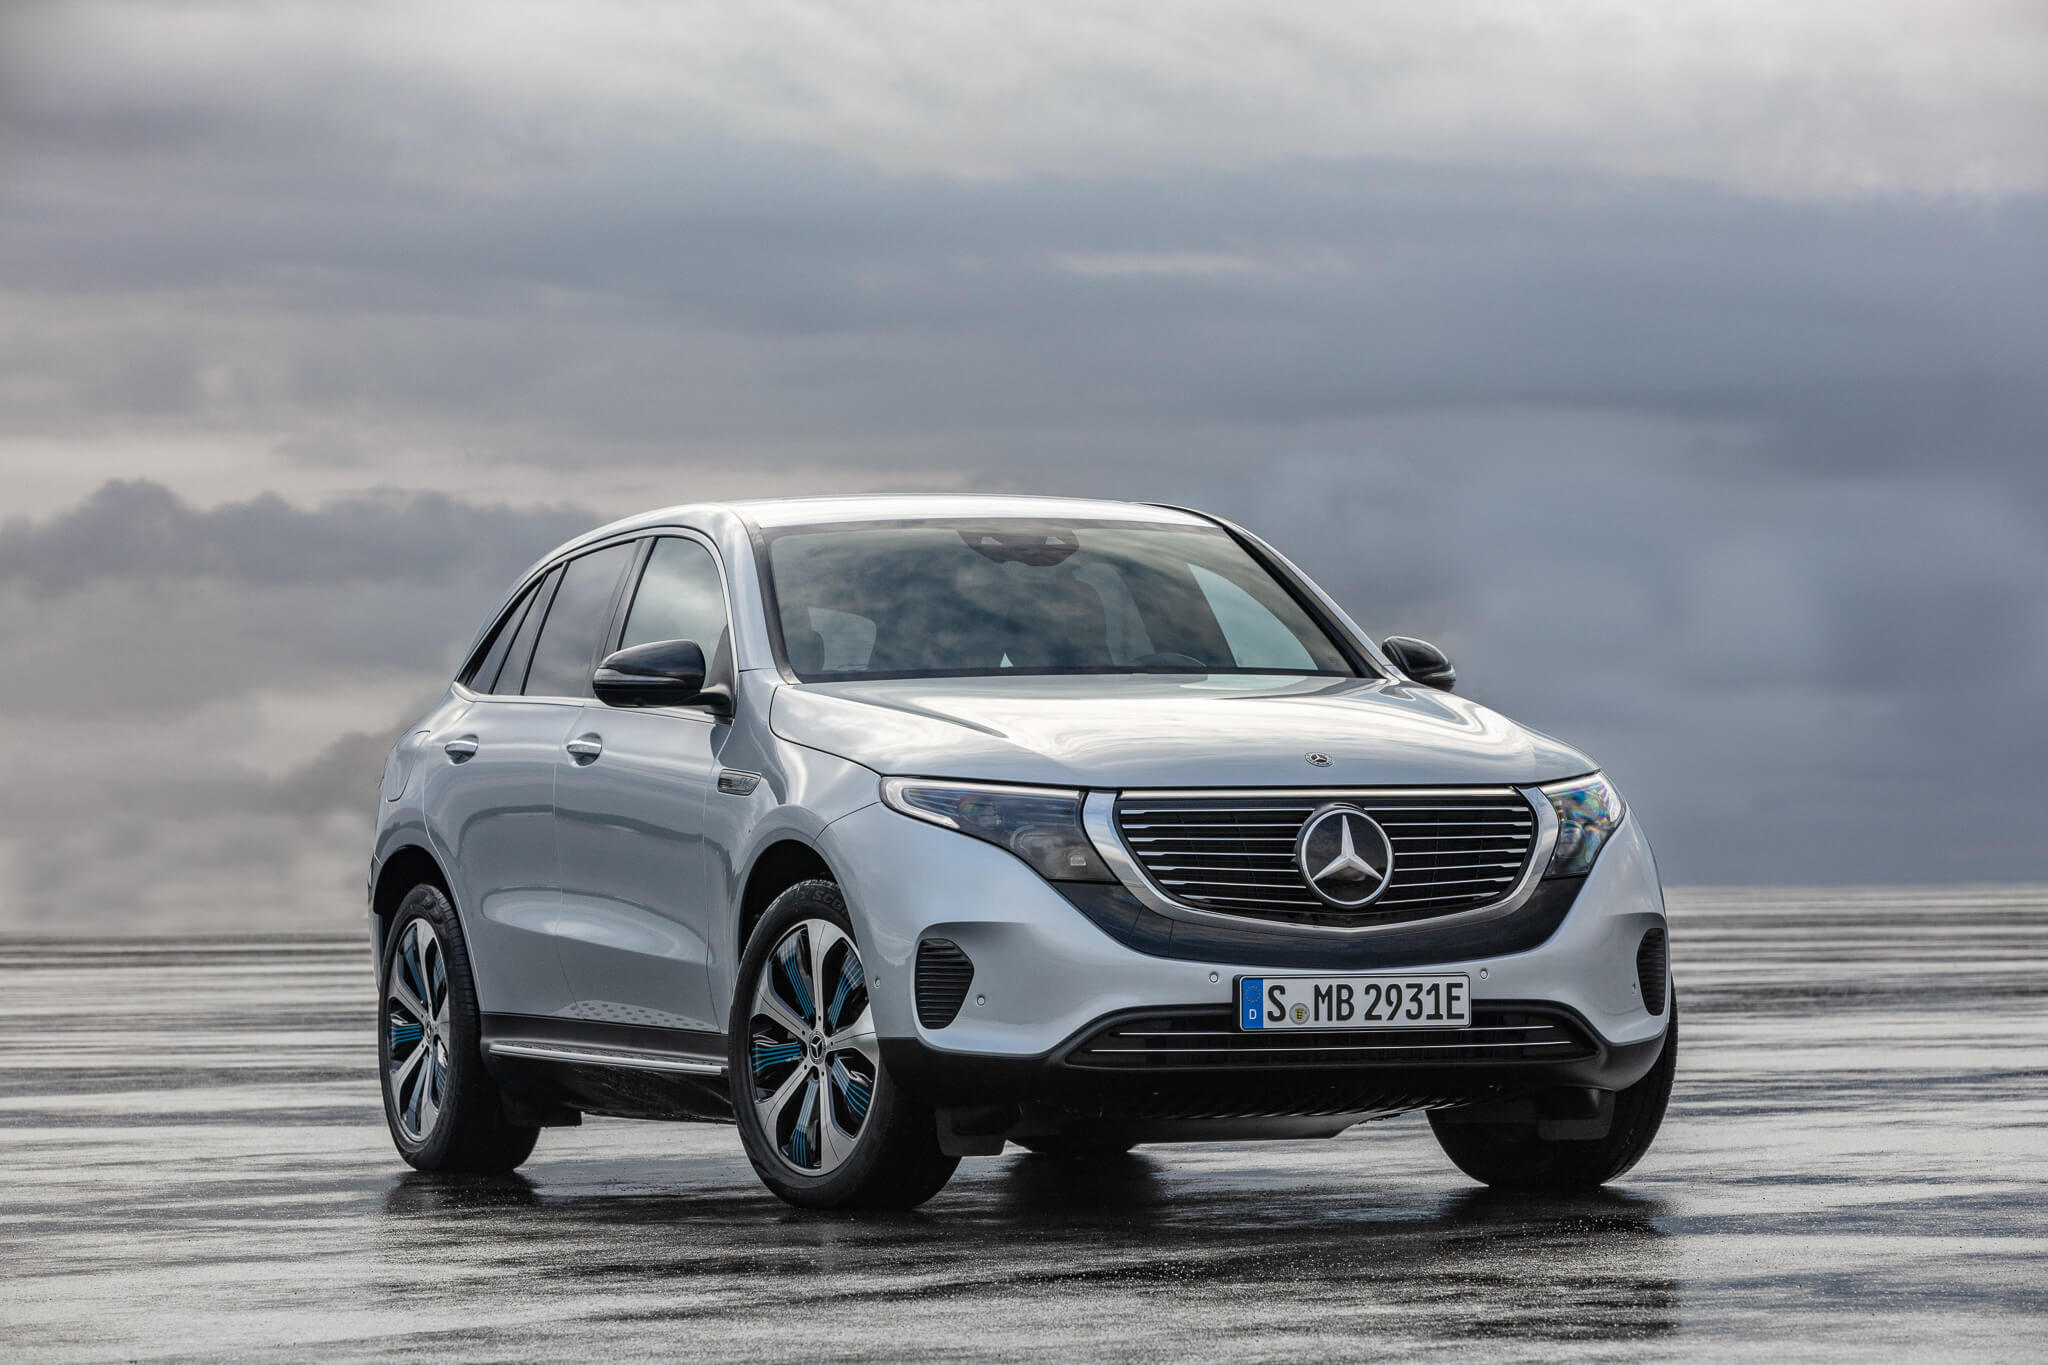 the-tailored-man-mercedes-benz-eqc-global-launch-2019